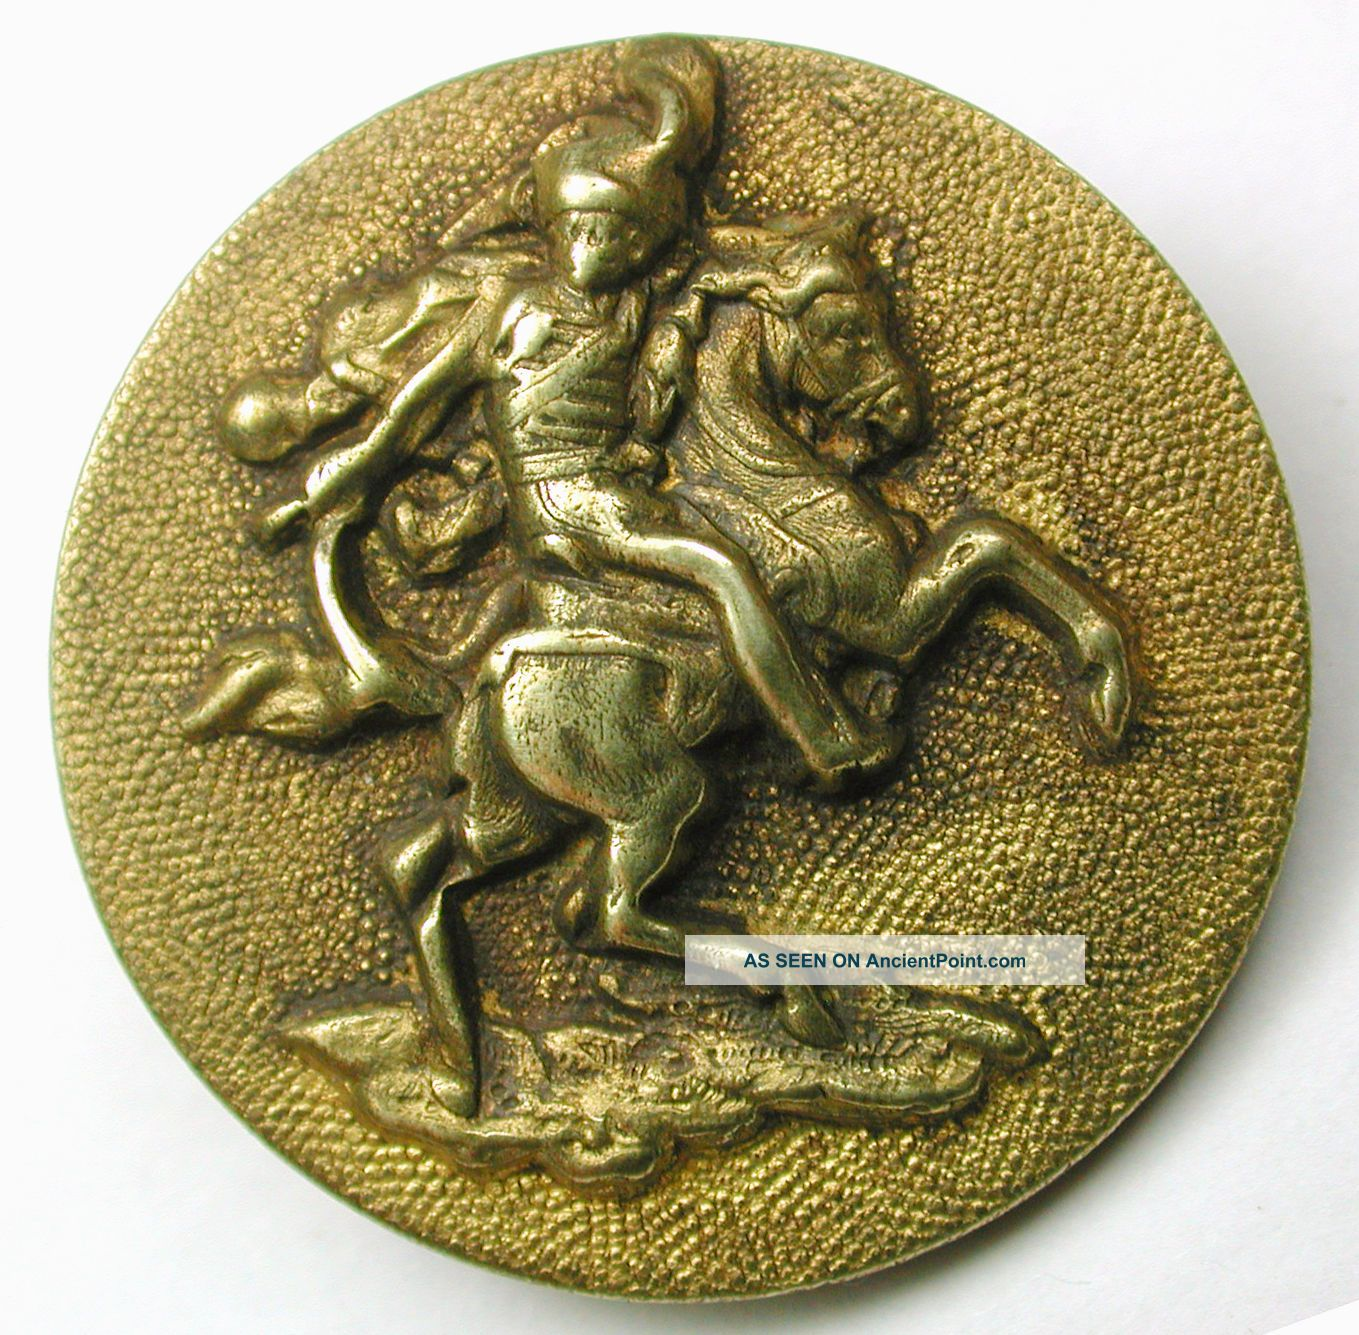 Antique Brass Equestrian Button Rider On Rearing Horse - Paris Back - 1 & 1/16 Buttons photo